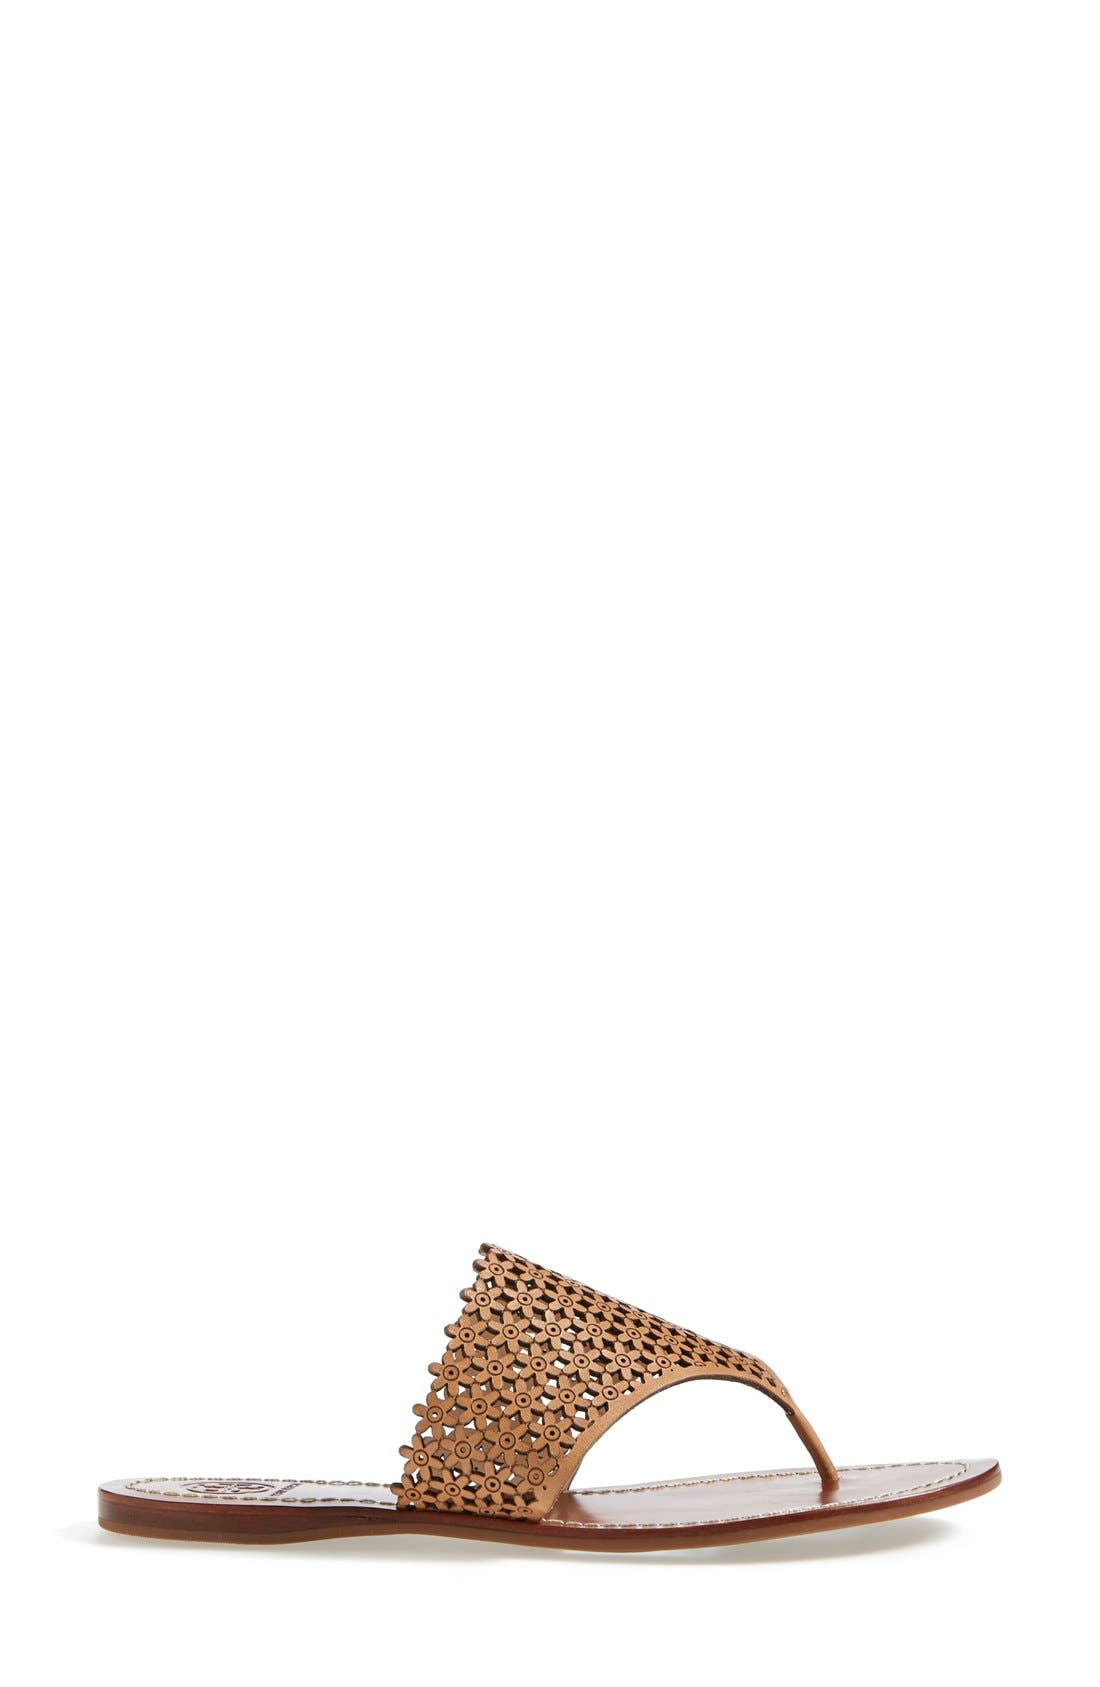 Alternate Image 3  - Tory Burch 'Daisy' Perforated Sandal (Women)